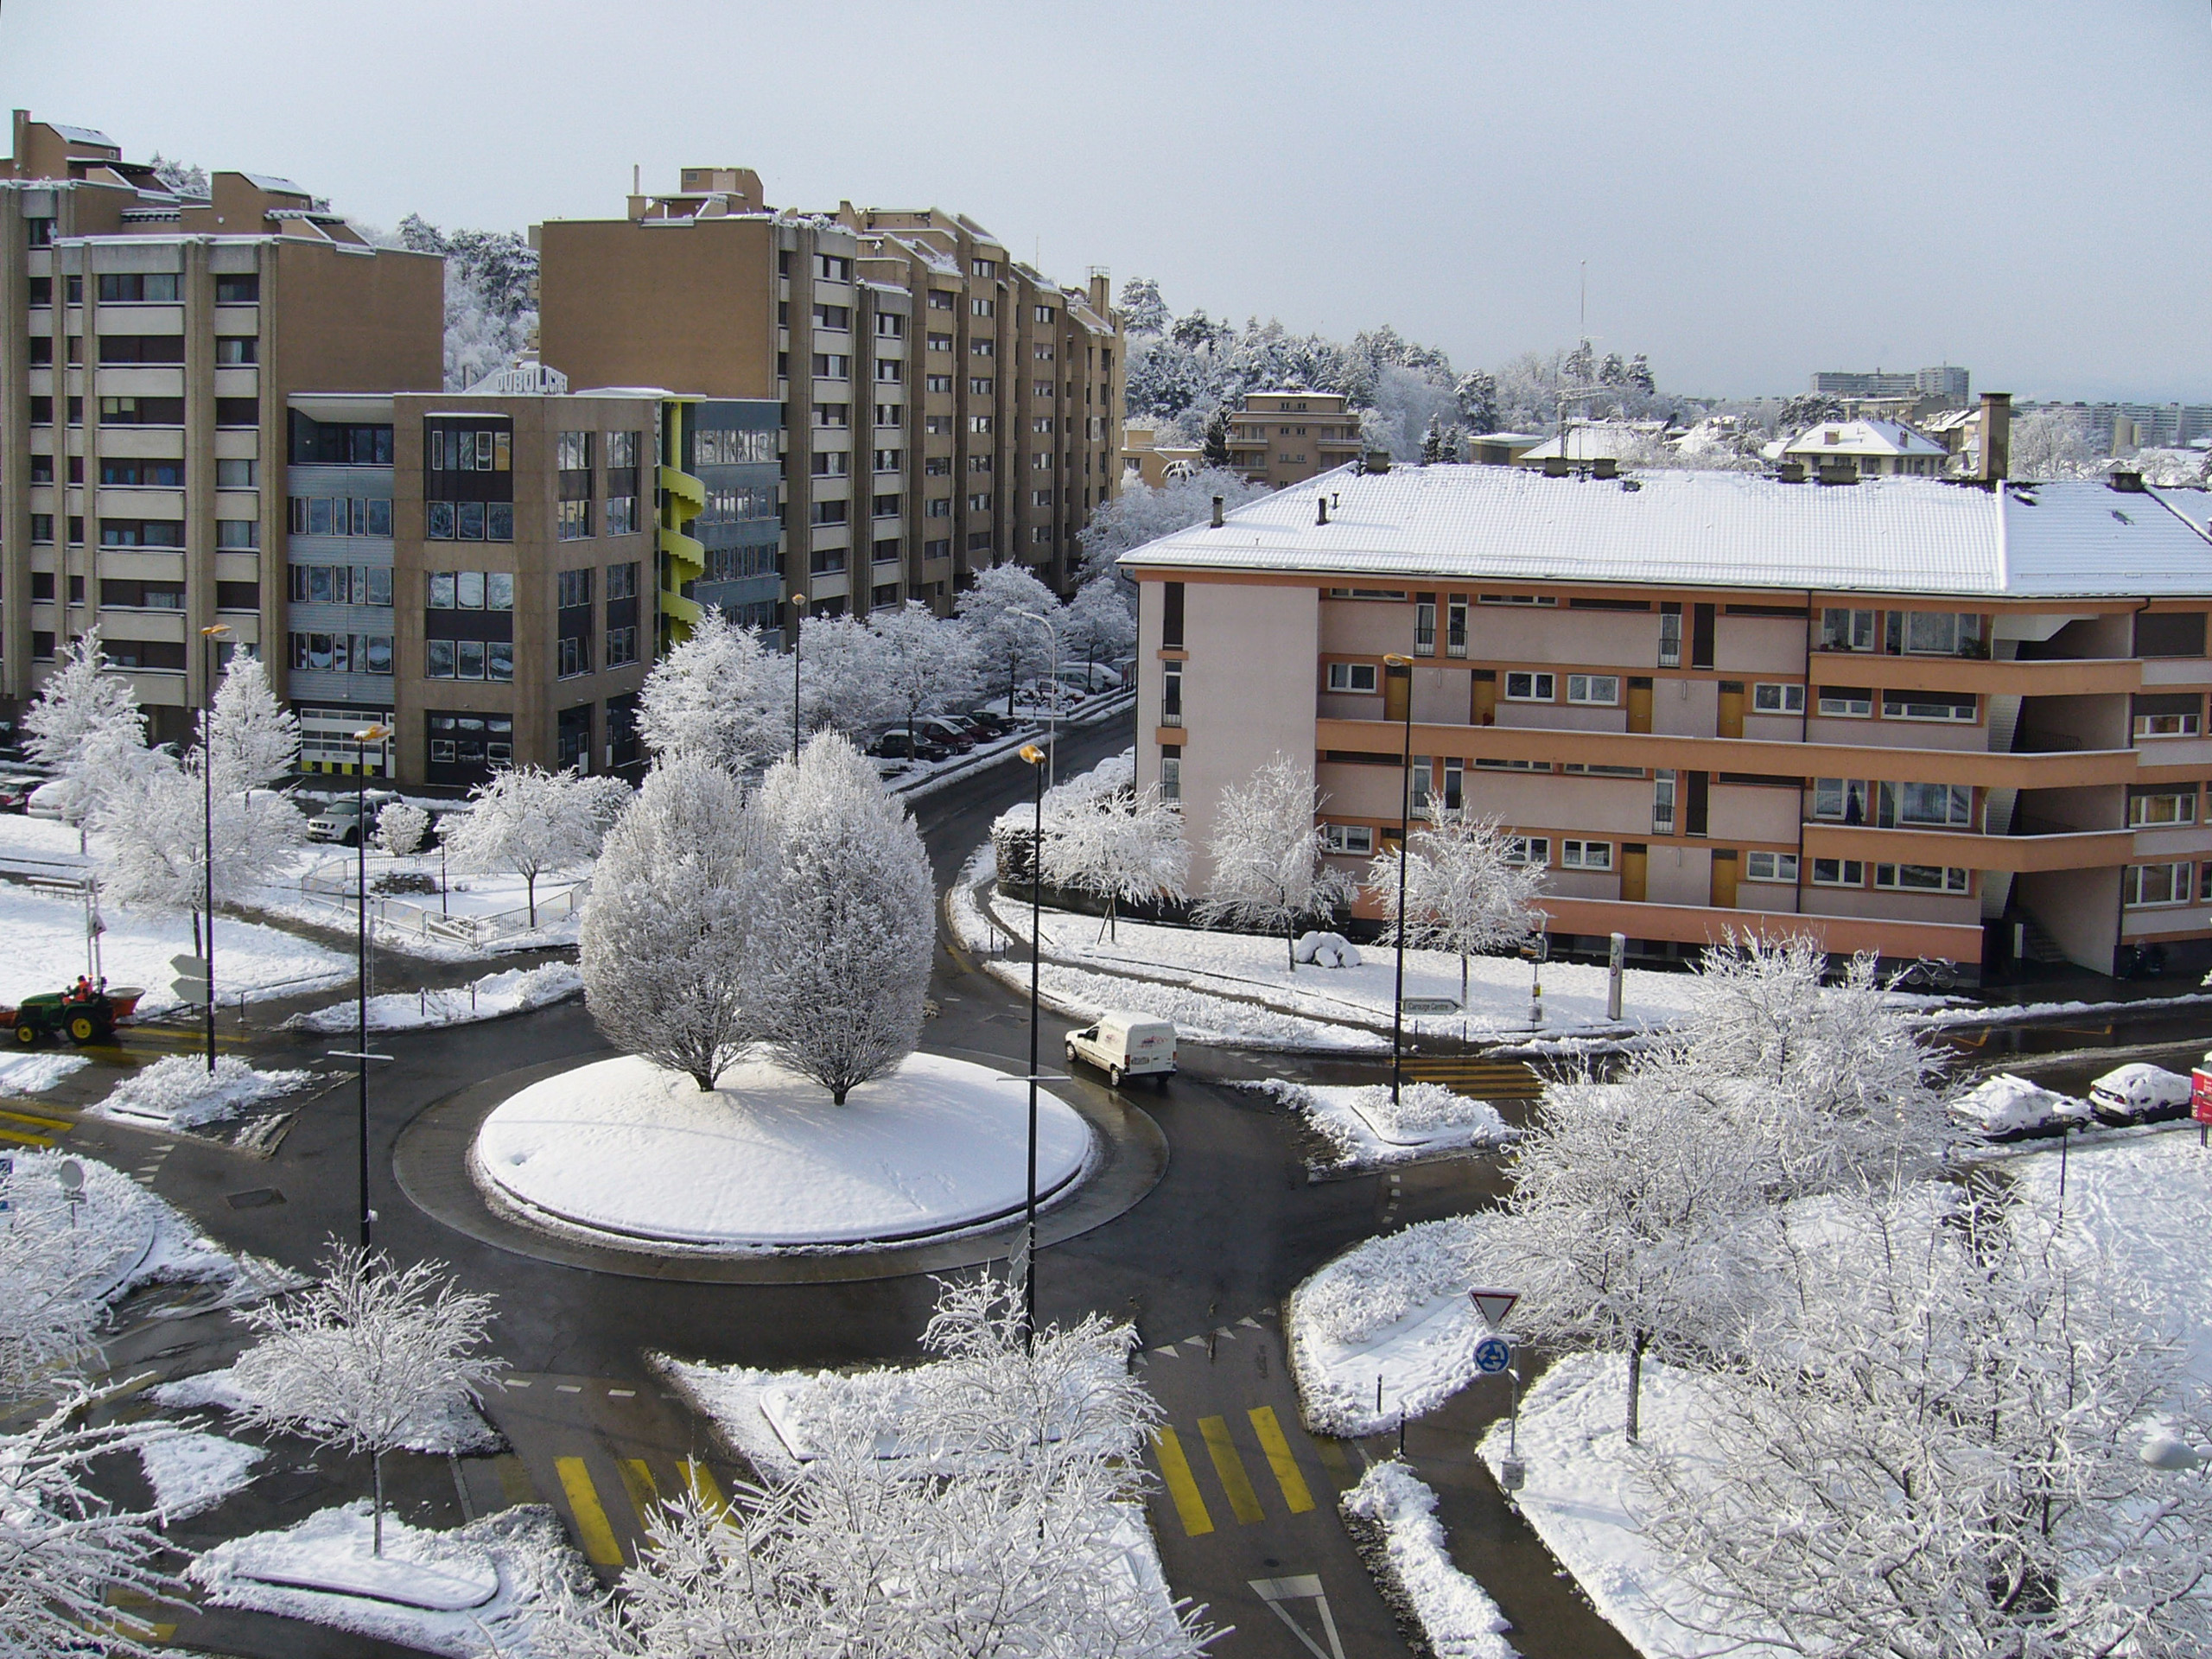 Carouge in the snow. An artsy, bohemian part of Geneva.